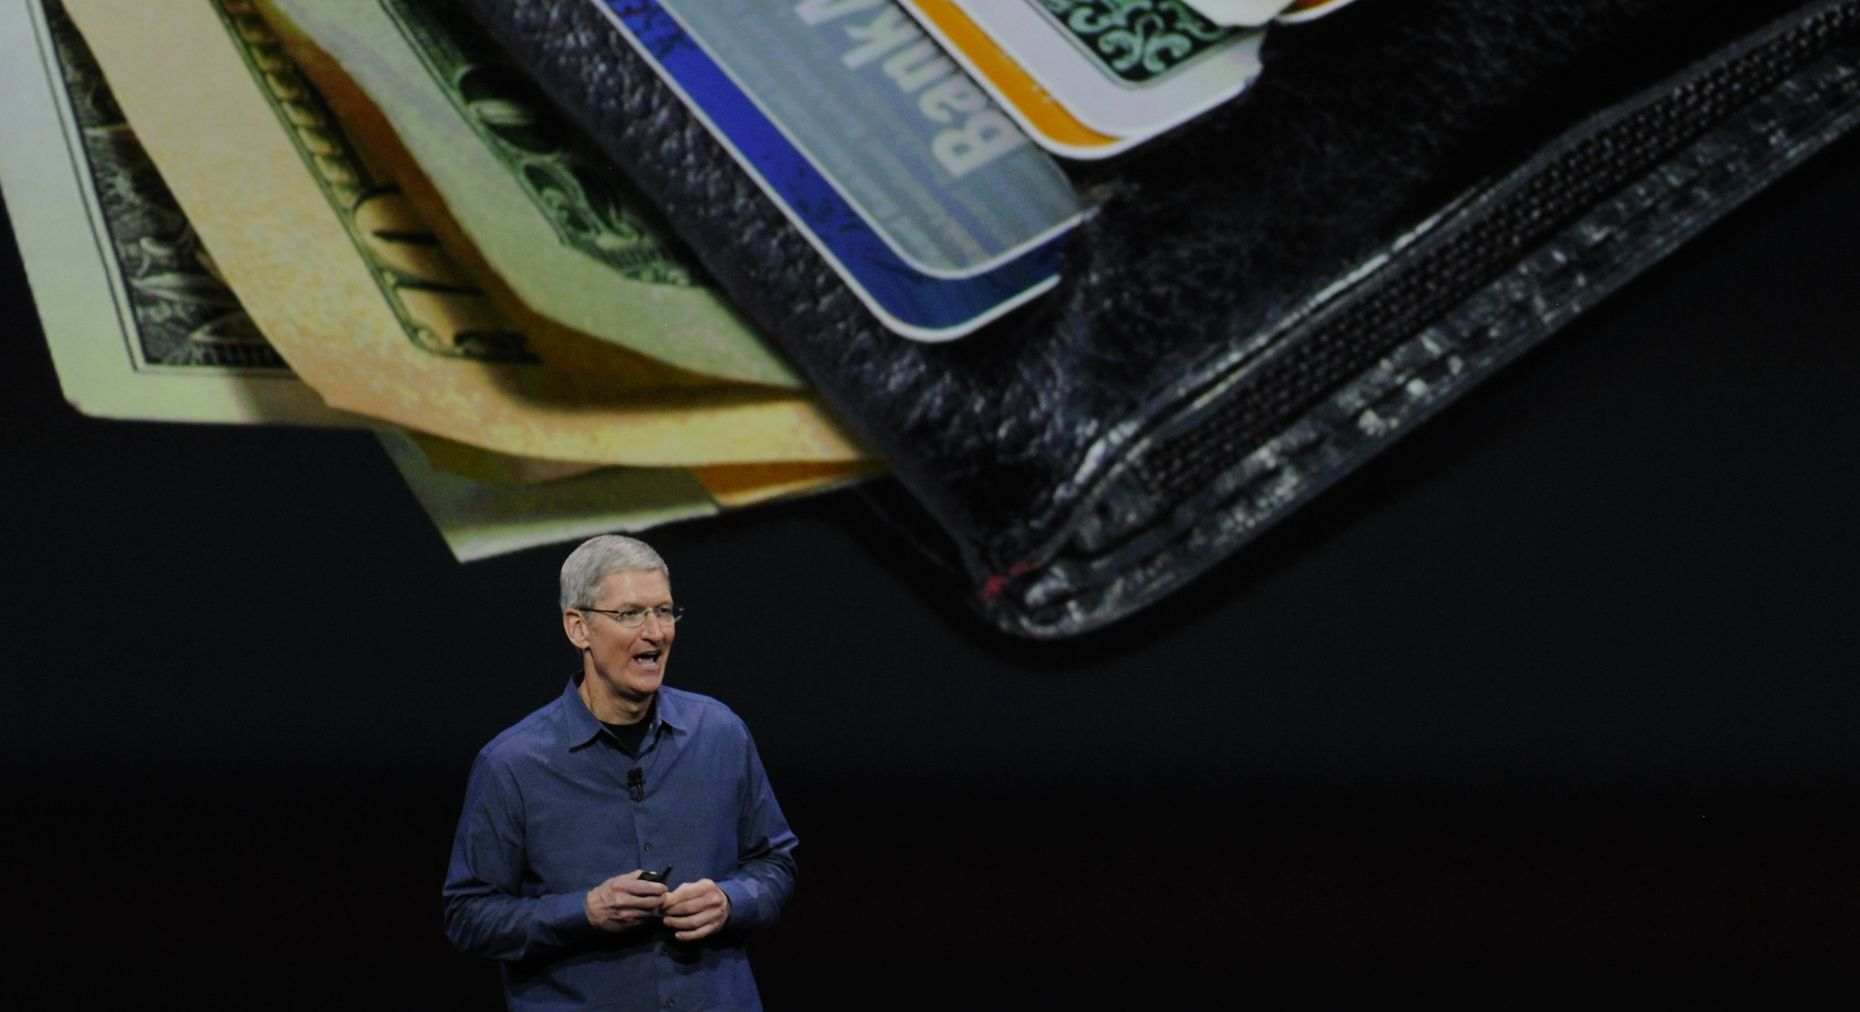 Apple CEO Tim Cook announcing Apple Pay. Photo by Bloomberg.